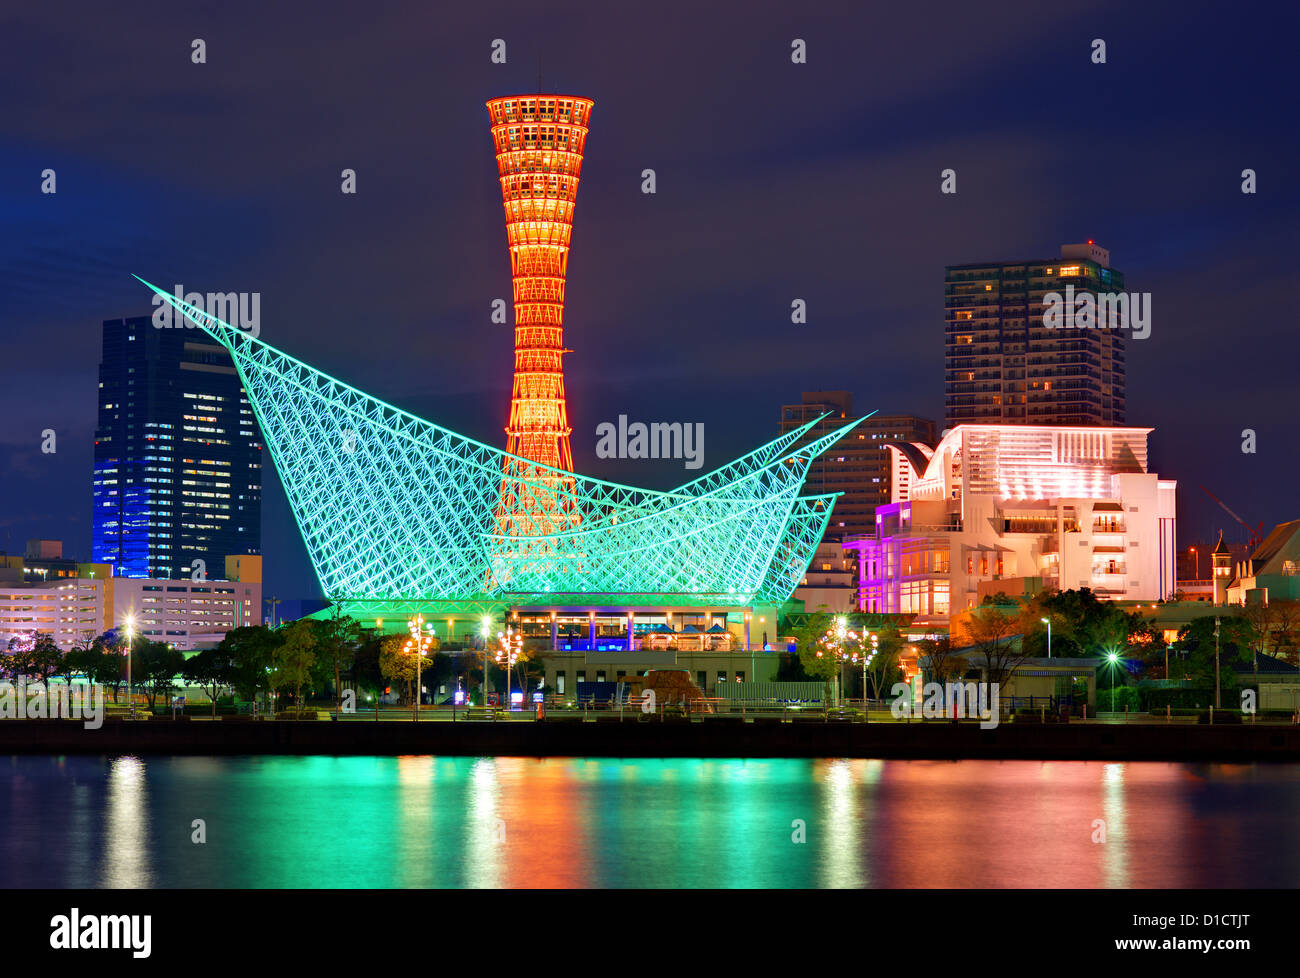 Port of Kobe Tower in Kobe, Japan. - Stock Image